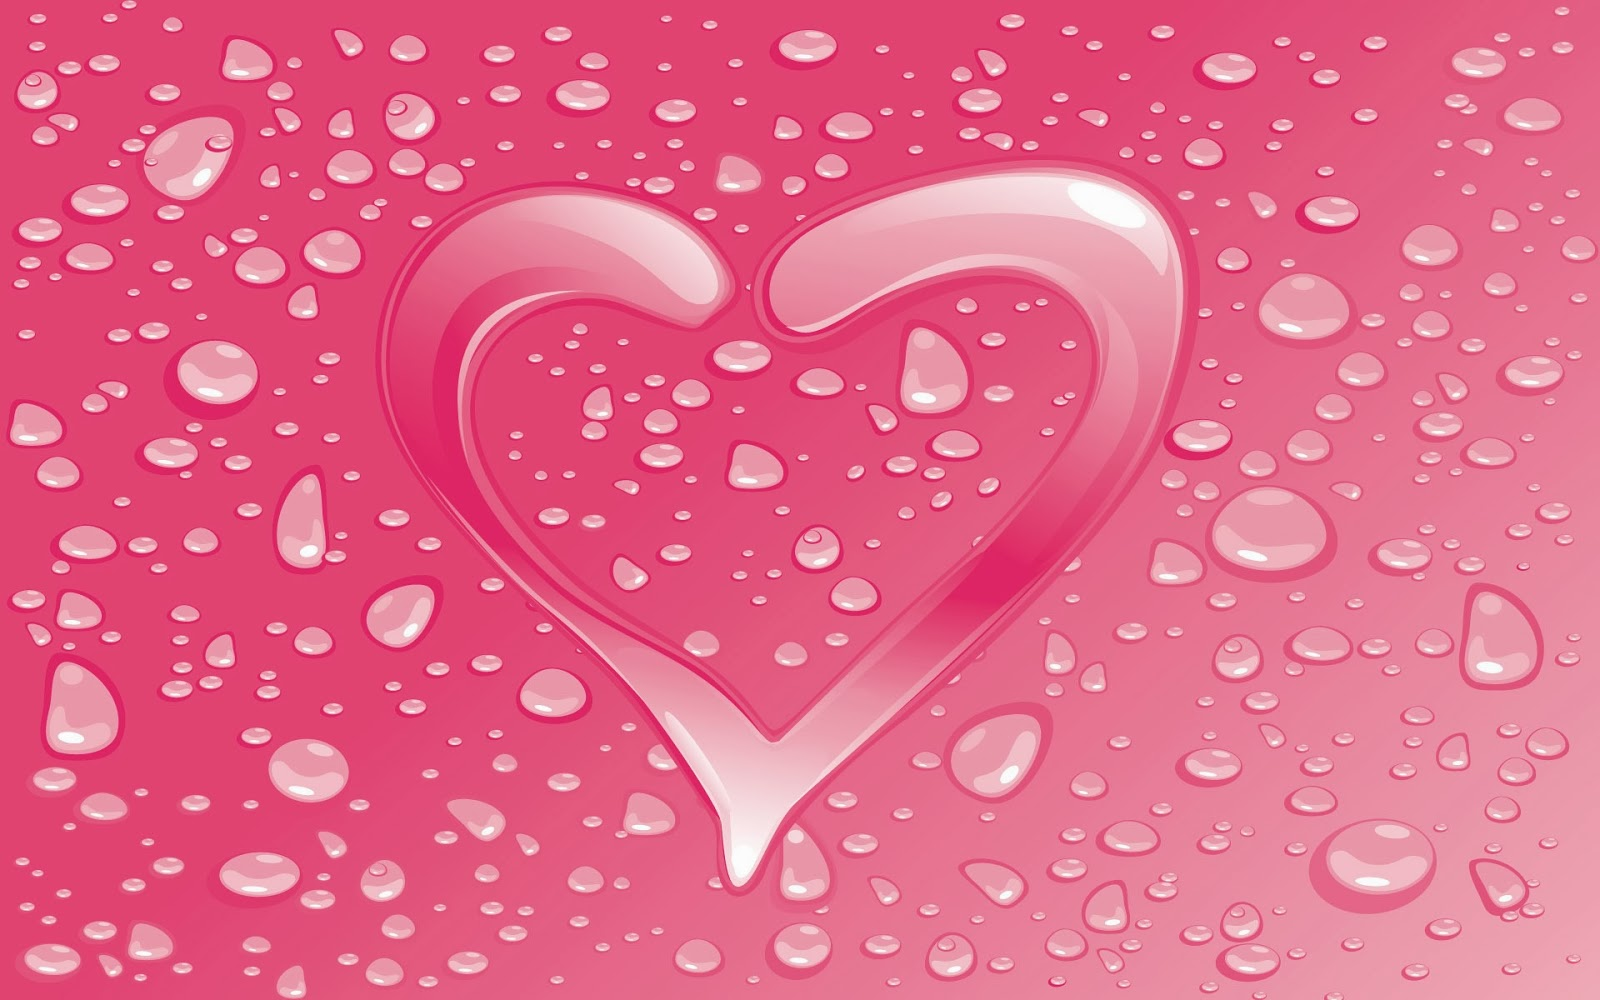 Happy Valentine Days Wallpaper Android Phones #12454 ...